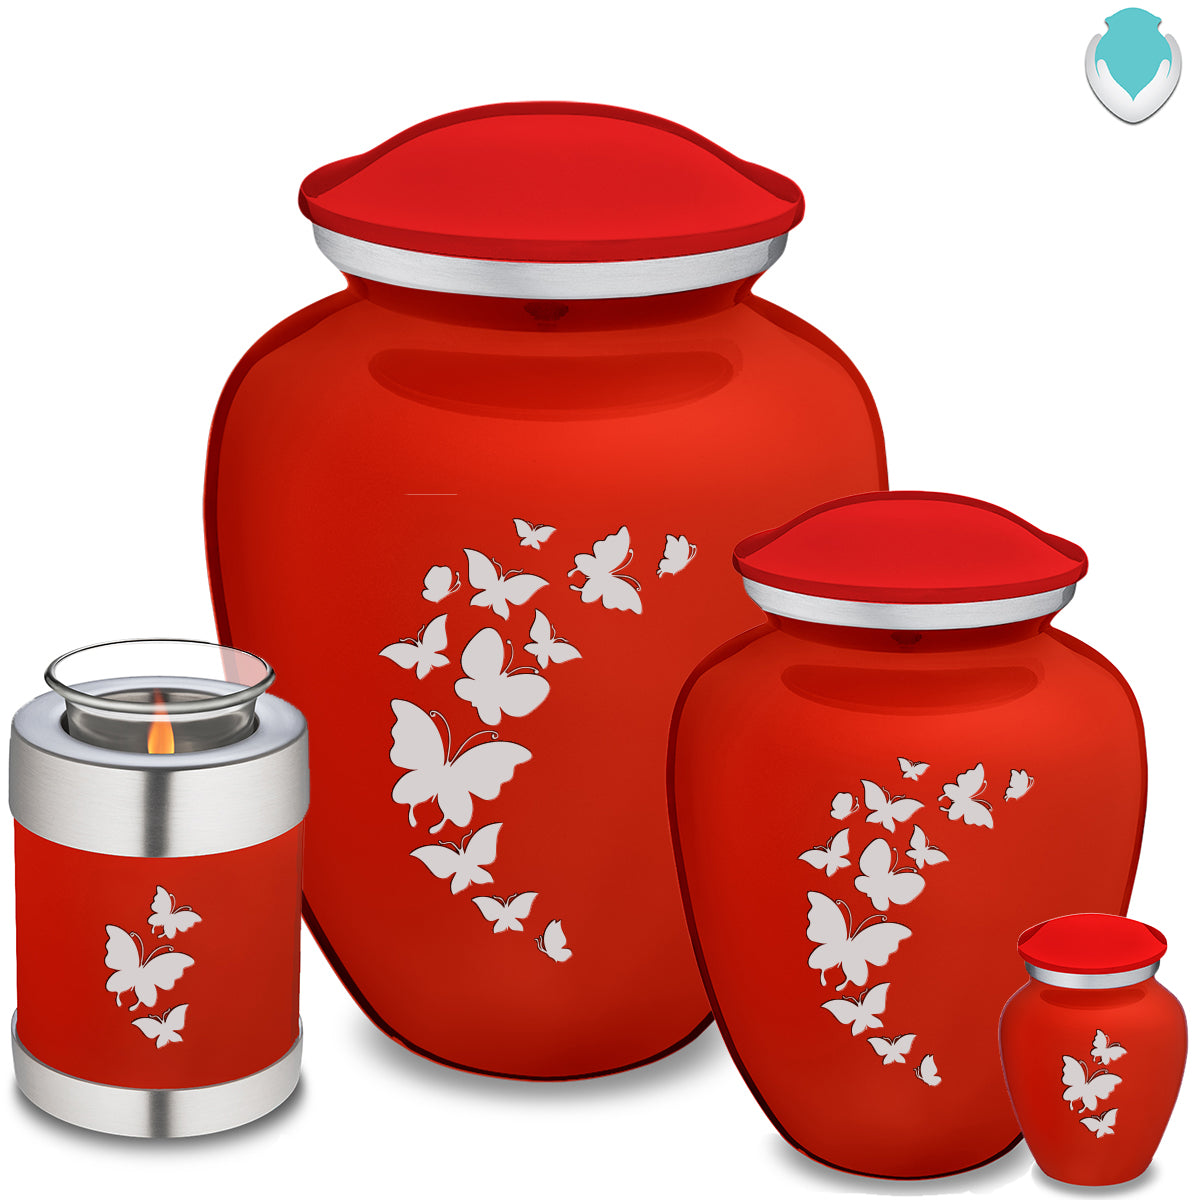 Adult Embrace Bright Red Butterfly Cremation Urn